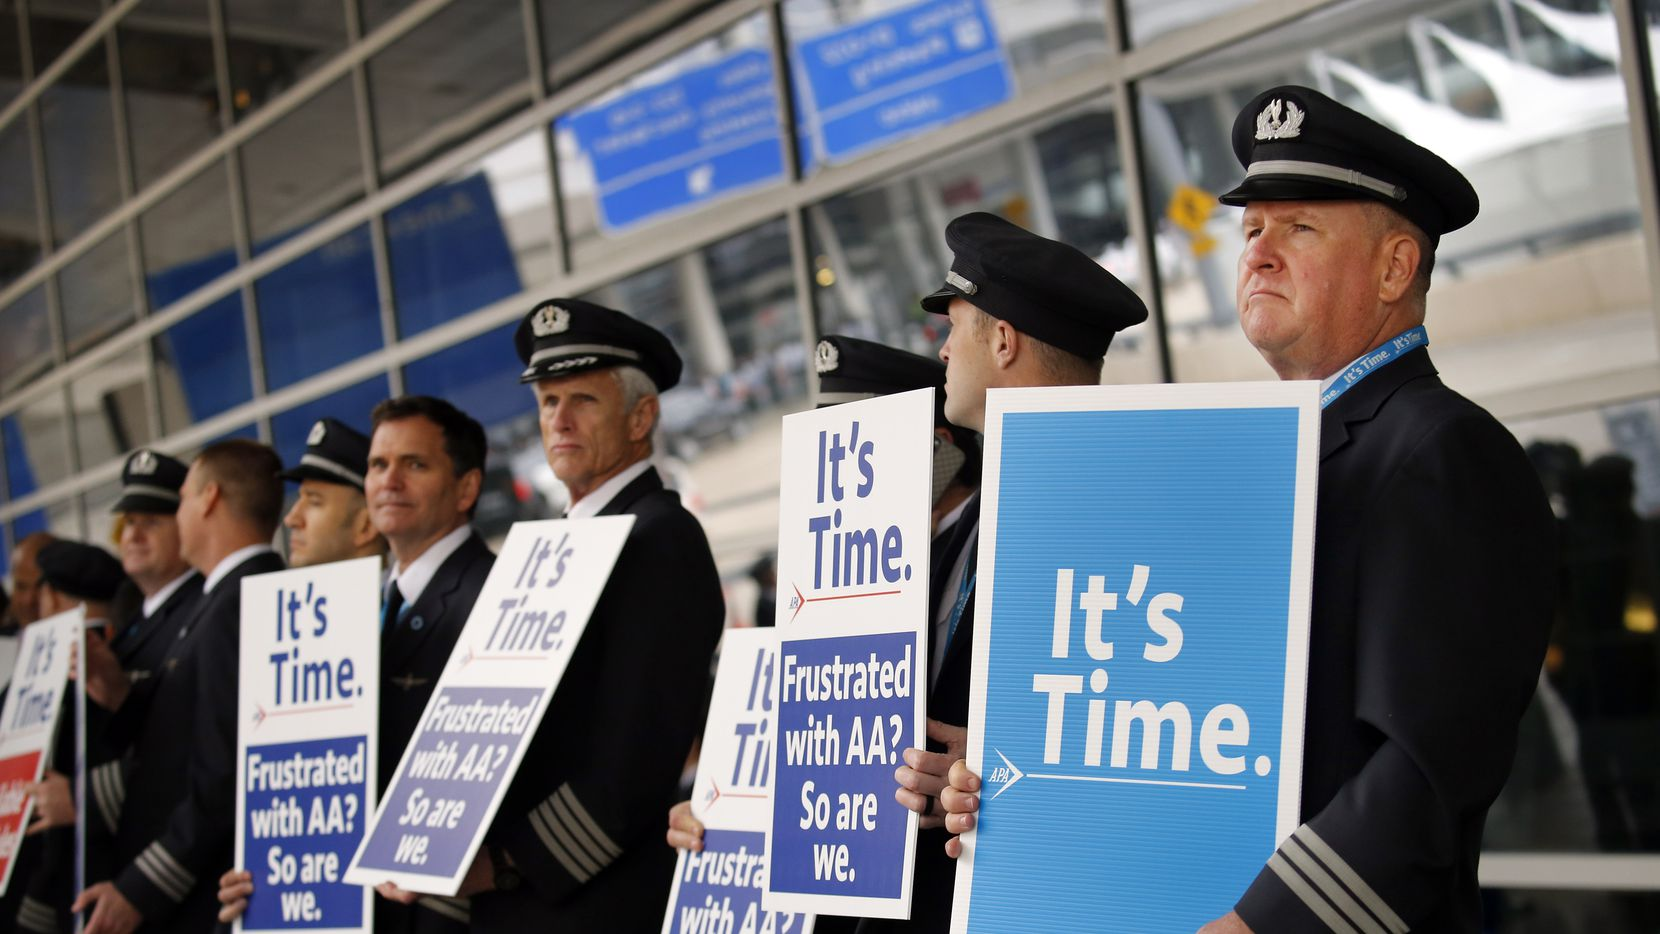 American Airlines first officer Ken Abernathy (right) joined pilots representing the Allied Pilots Association in rallying for a new contract in January 2020.